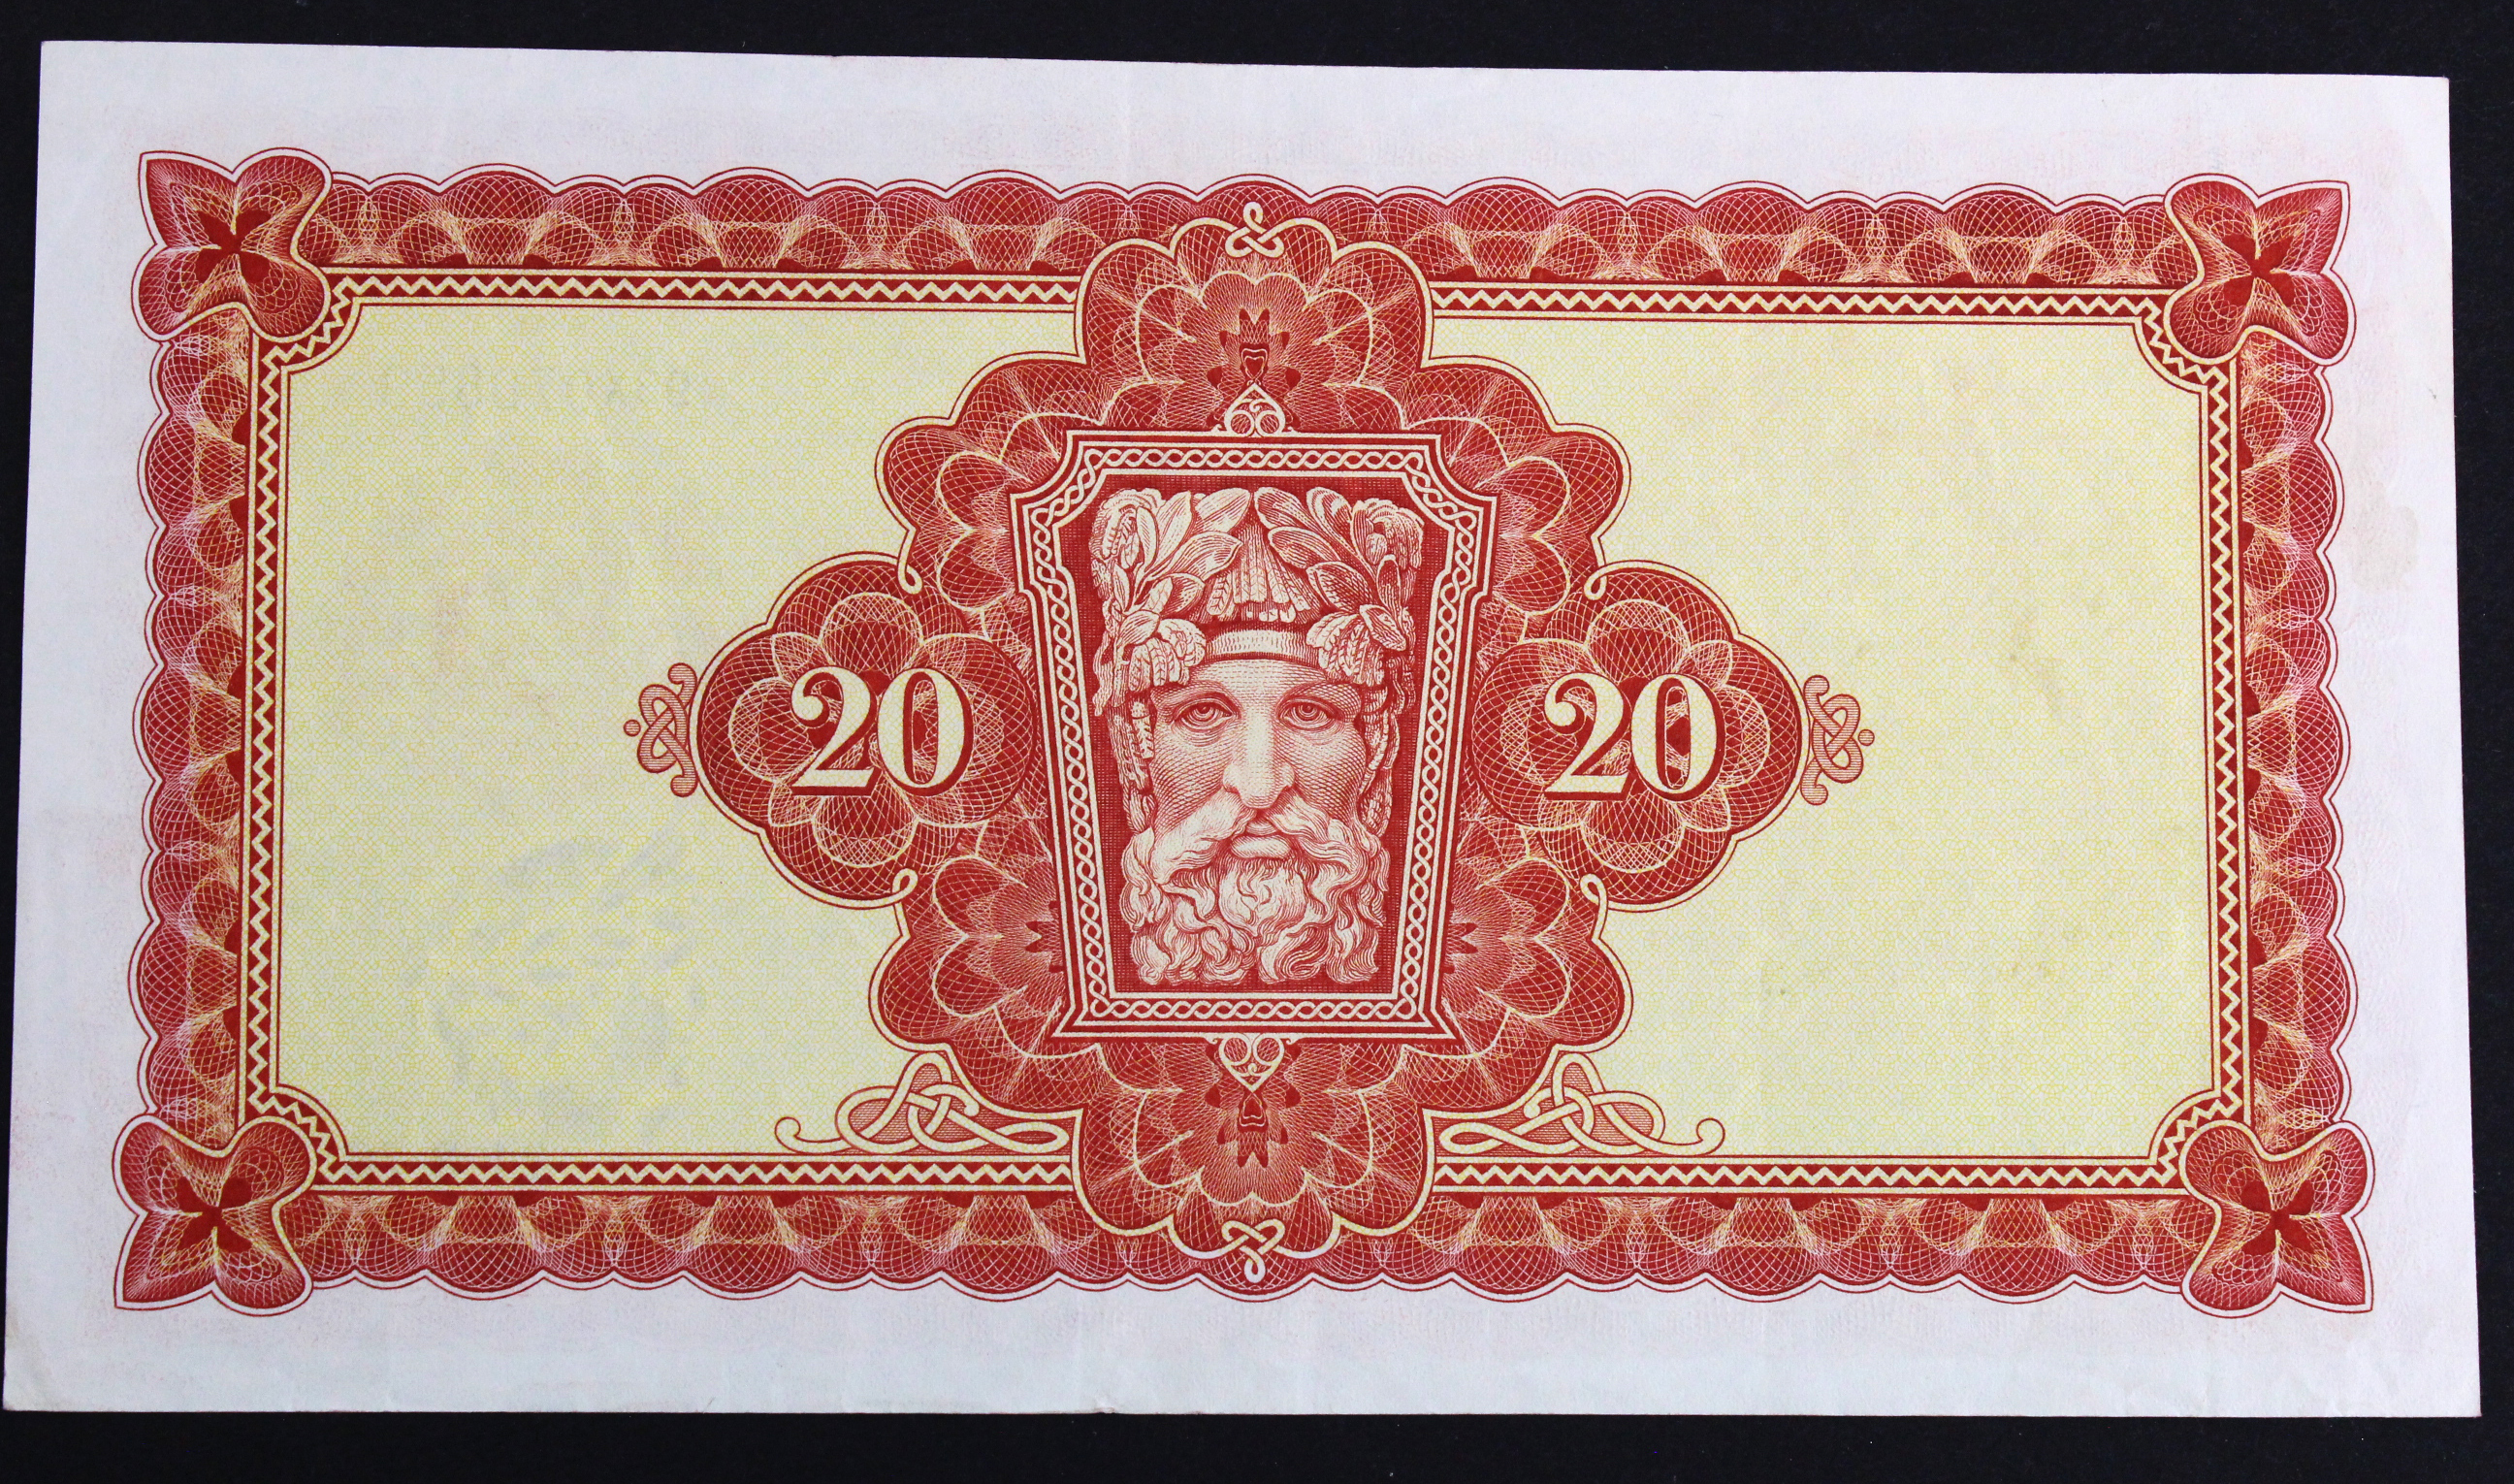 Ireland Republic 20 Pounds dated 24th March 1976, last date of issue, Lady Lavery portrait at - Image 2 of 2